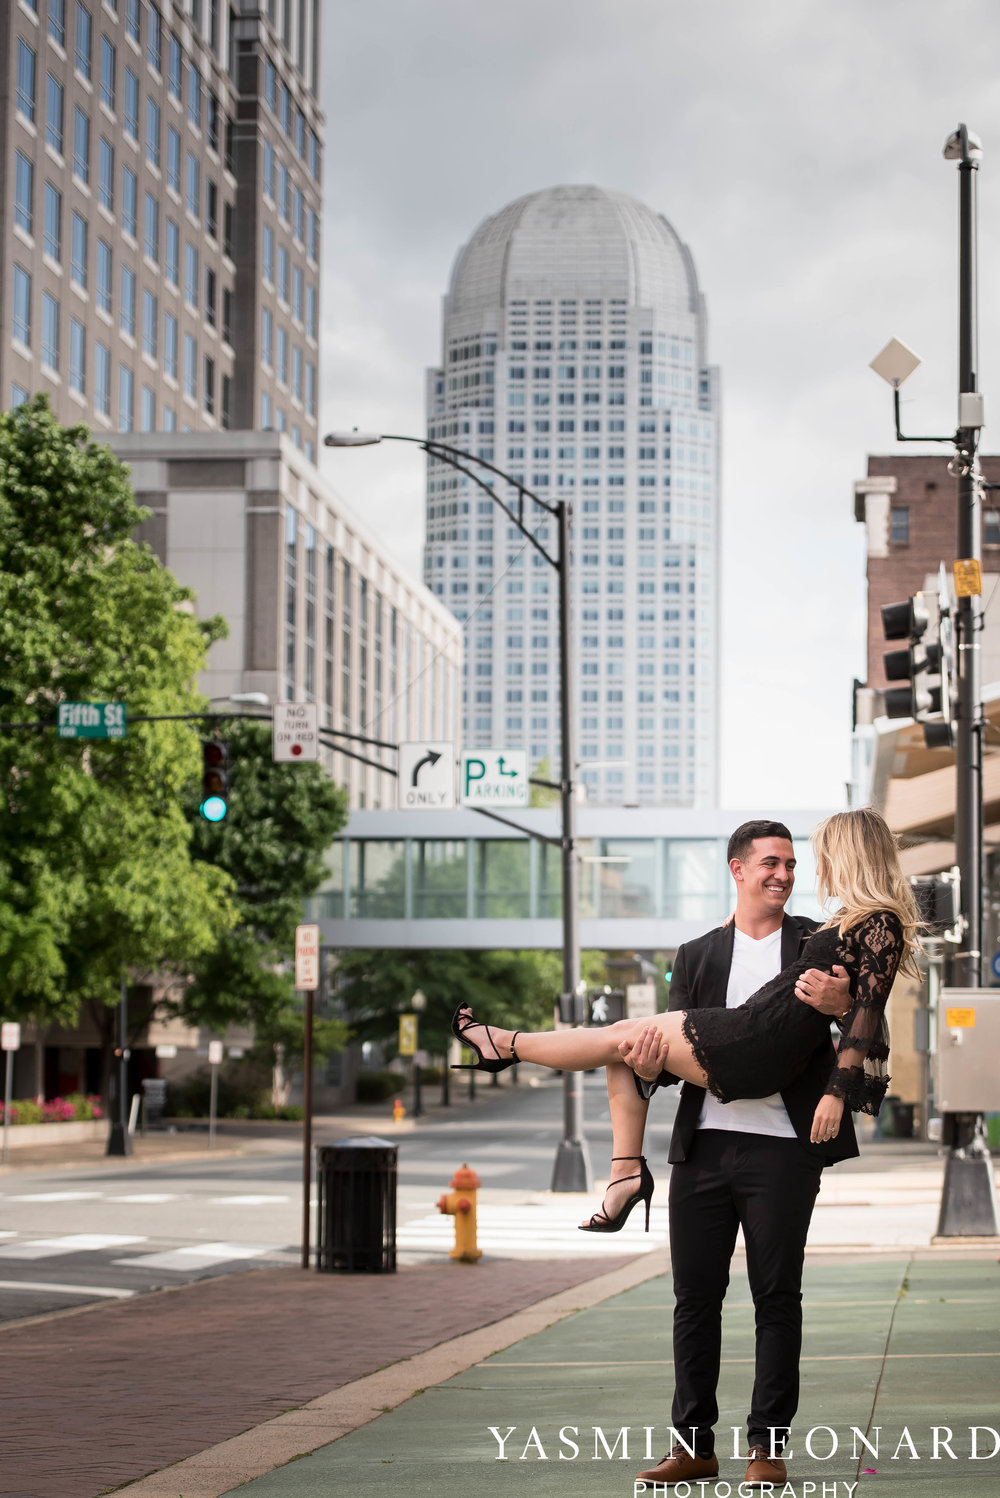 Downtown Winston Salem Engagement Session - NC Engaged - NC Weddings - Winston Salem Weddings - Yasmin Leonard Photography-7.jpg